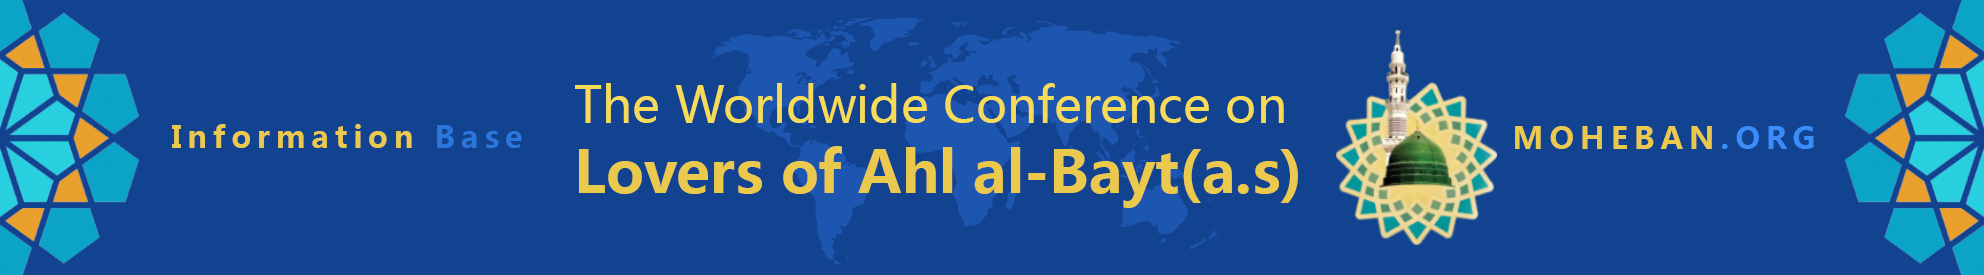 The Worldwide Conference on Lovers of Ahl al-Bayt(as)